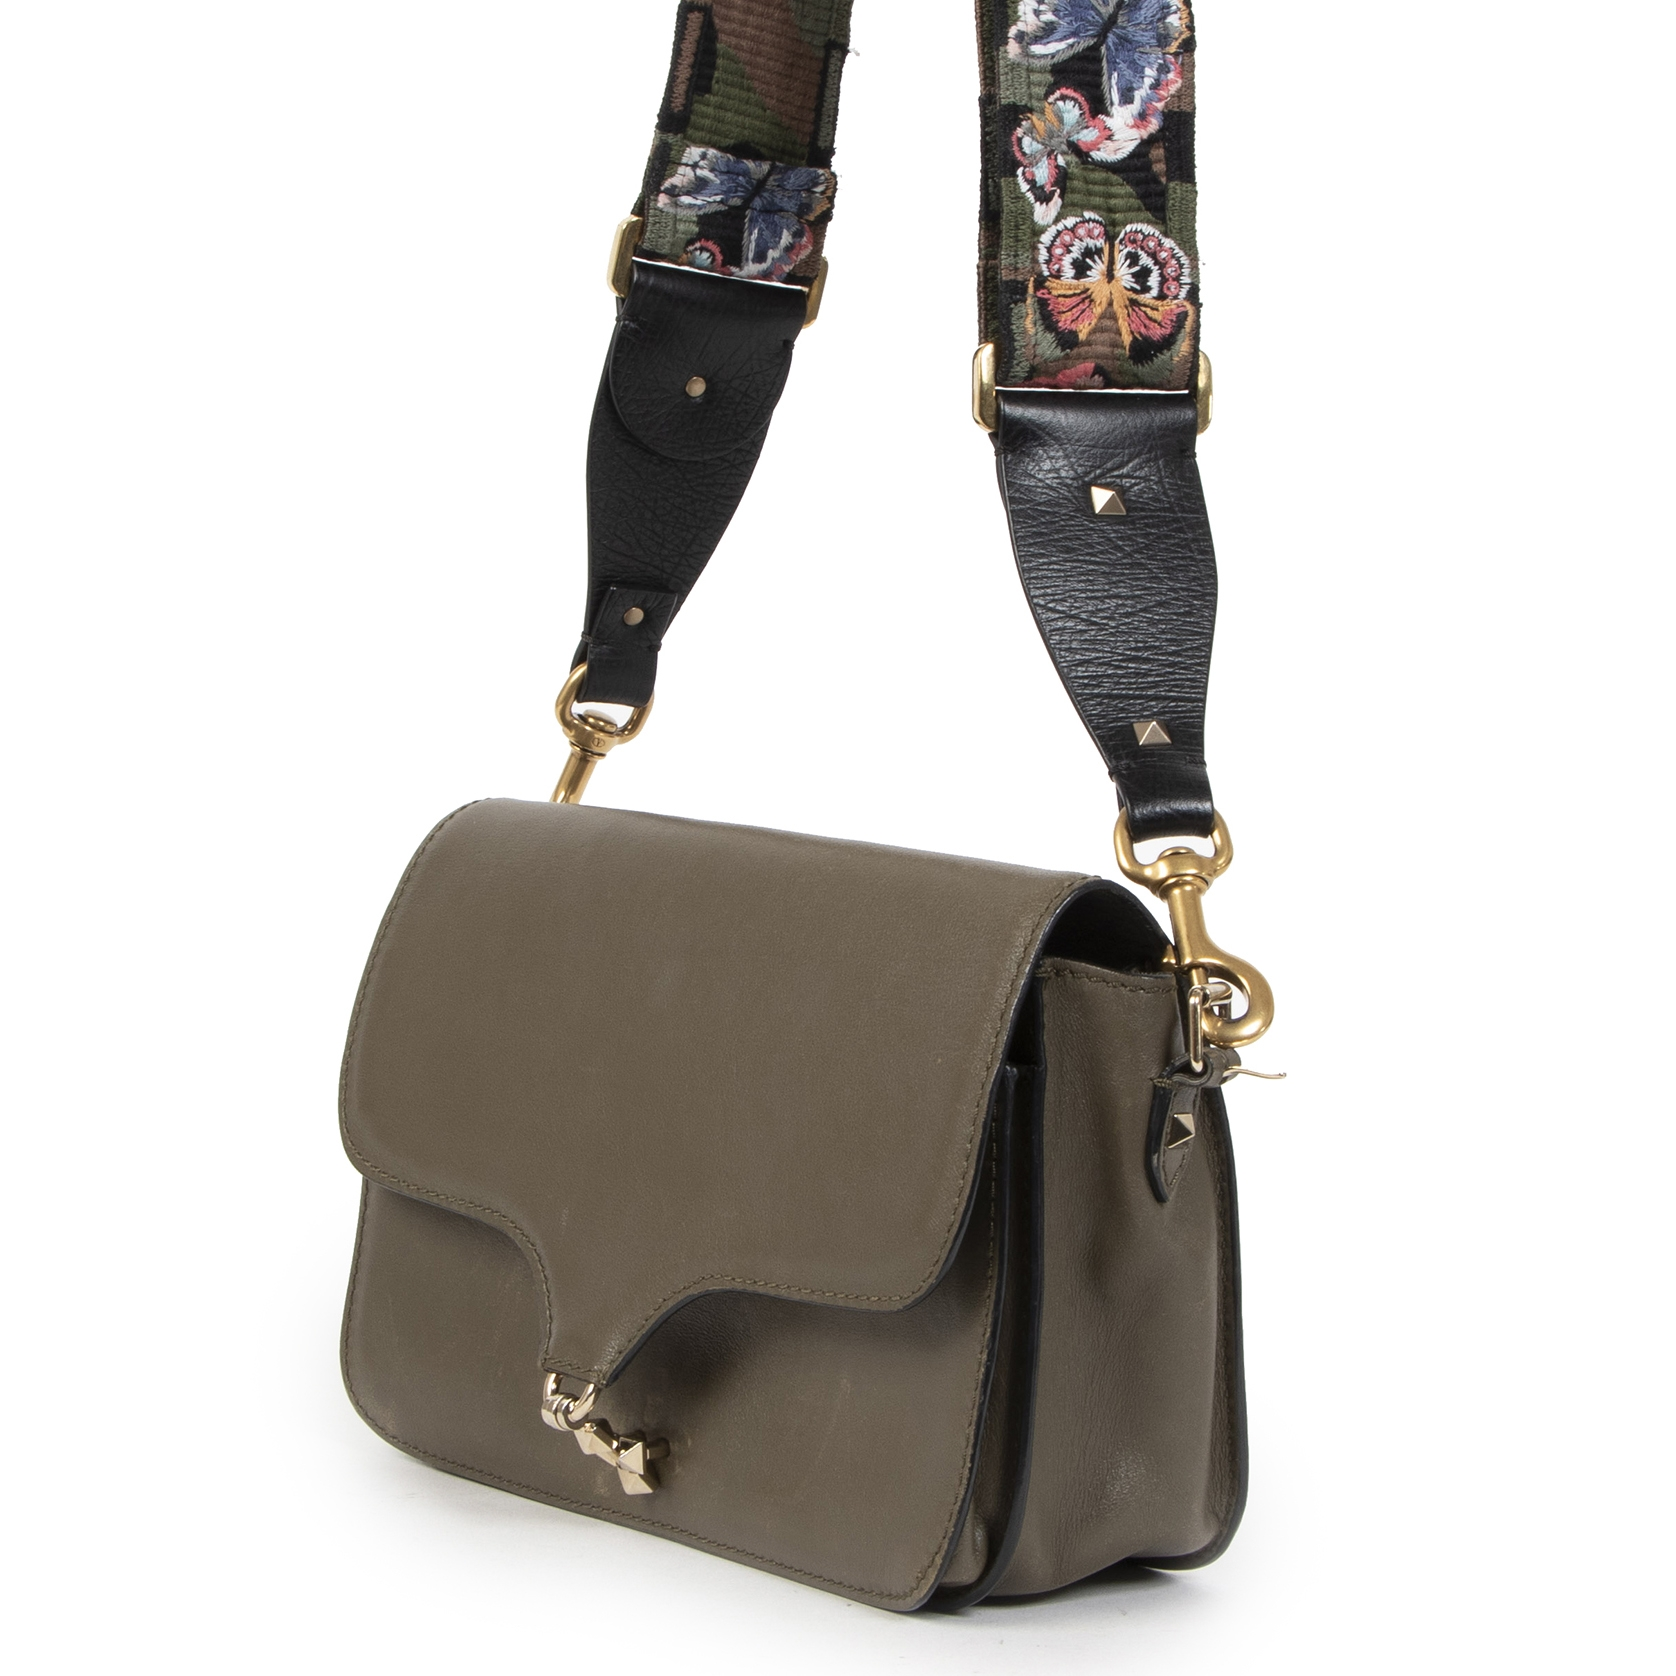 Buy authentic secondhand Valentino Garavani Olive Leather Butterfly Camo Strap Cross Body Bag at the right price at LabelLOV vintage webshop. Safe and secure online shopping. Koop authentieke tweedehands Valentino Garavani Olive Leather Butterfly Camo Str